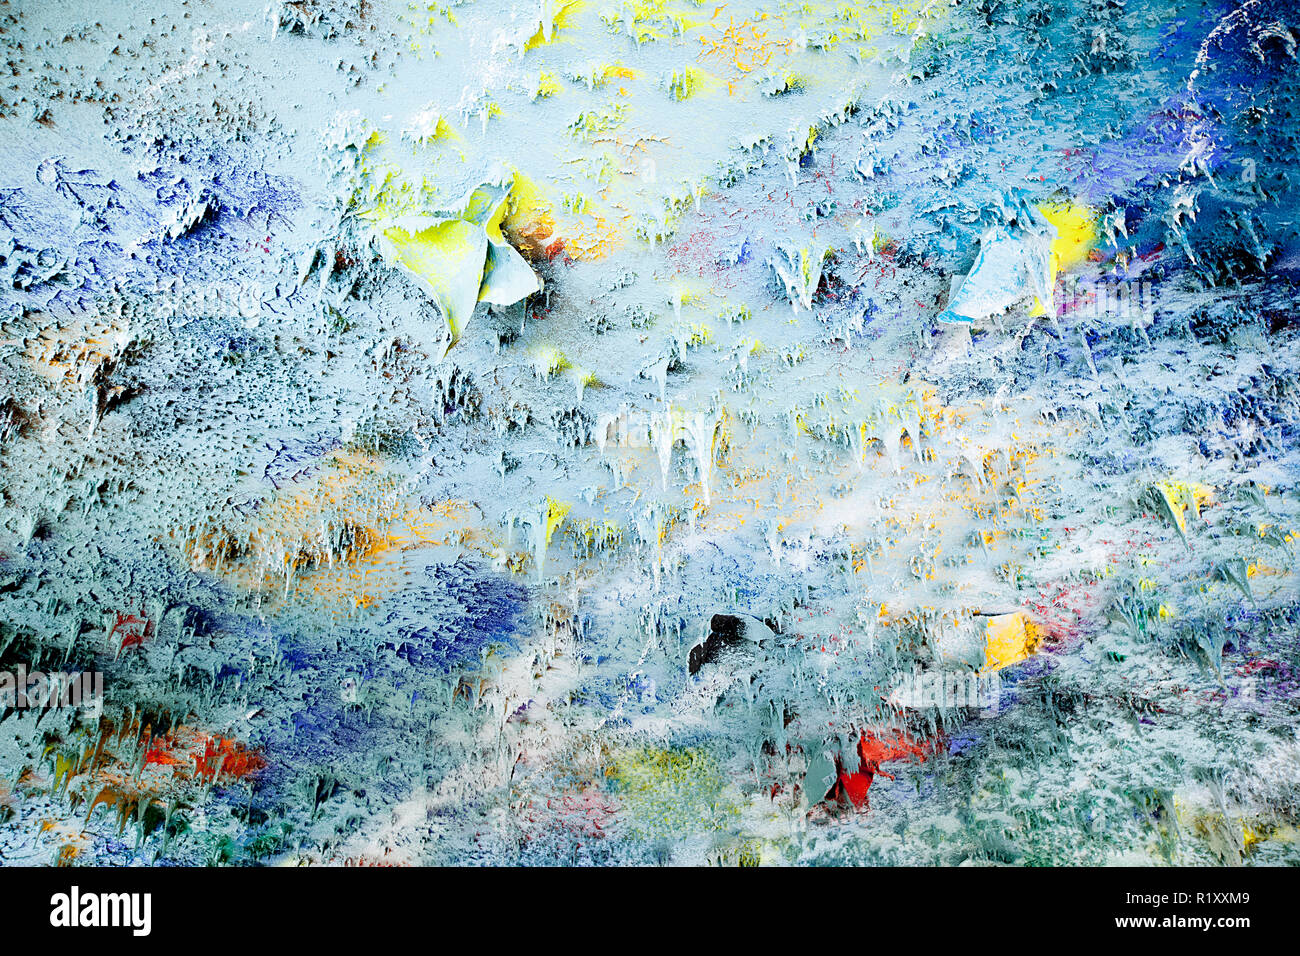 Geneva - Switzerland, February 27, 2014. The Spanish painter Miquel Barcelo is the artist behind the colourful ceiling of the Human Rights and Alliance of Civilizations Room (Room XX) at the United Nations Office in Geneva, the Palais des Nations. The stalactite forms are inspired by nature. - Stock Image